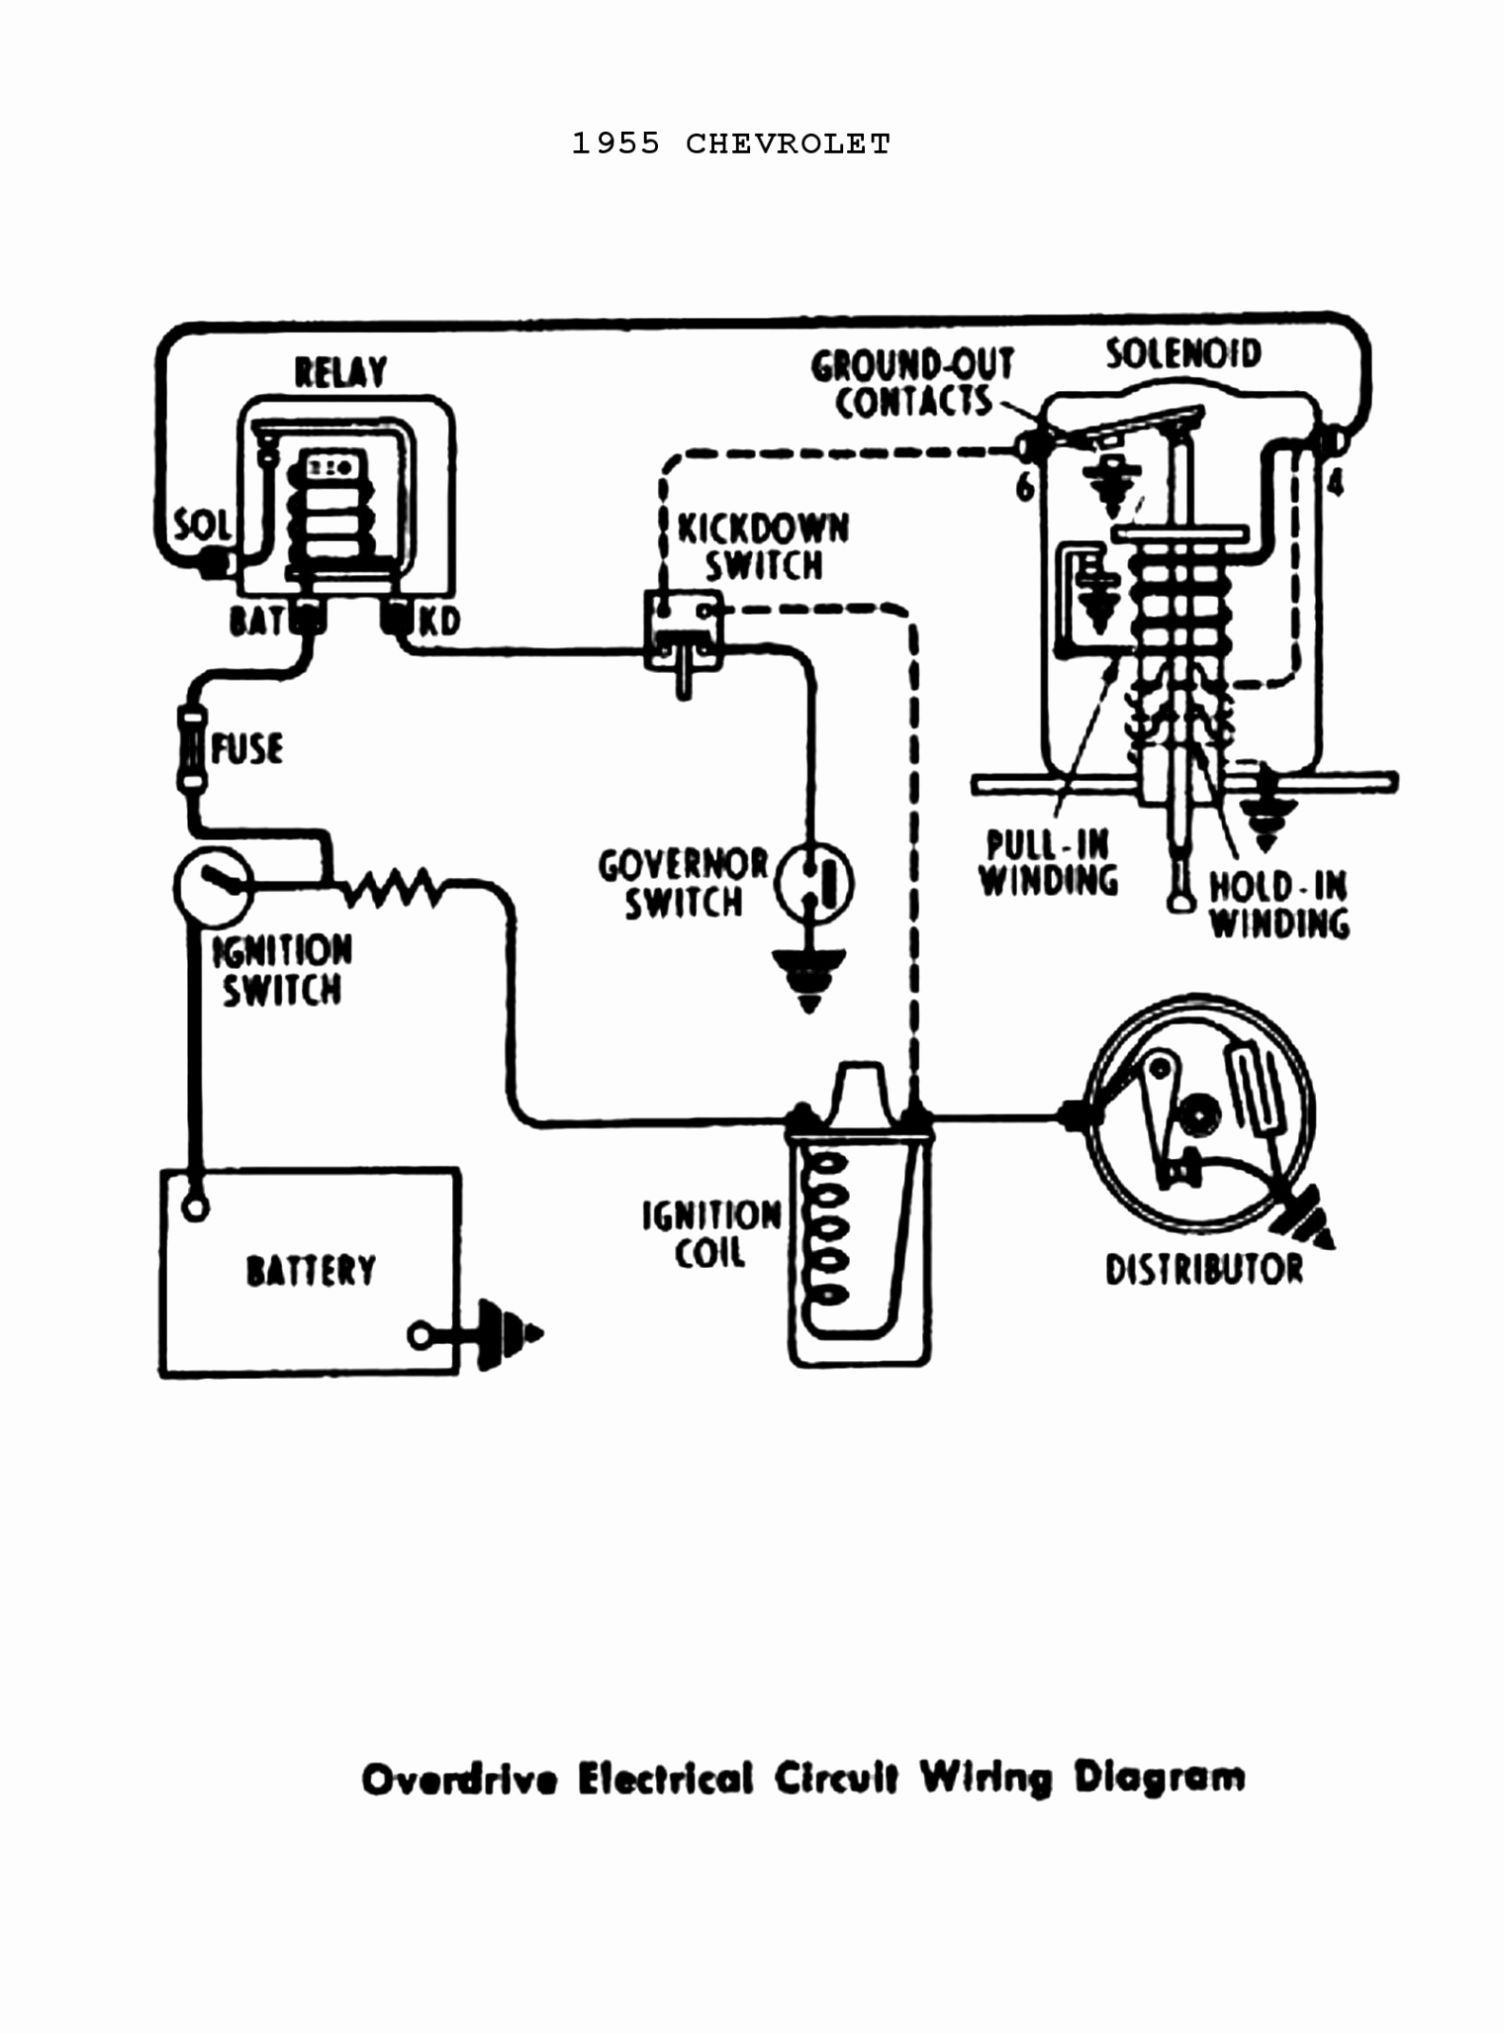 medium resolution of unique motorola alternator wiring diagram john deere diagrams digramssample diagramimages wiringdiagramsample wiringdiagram